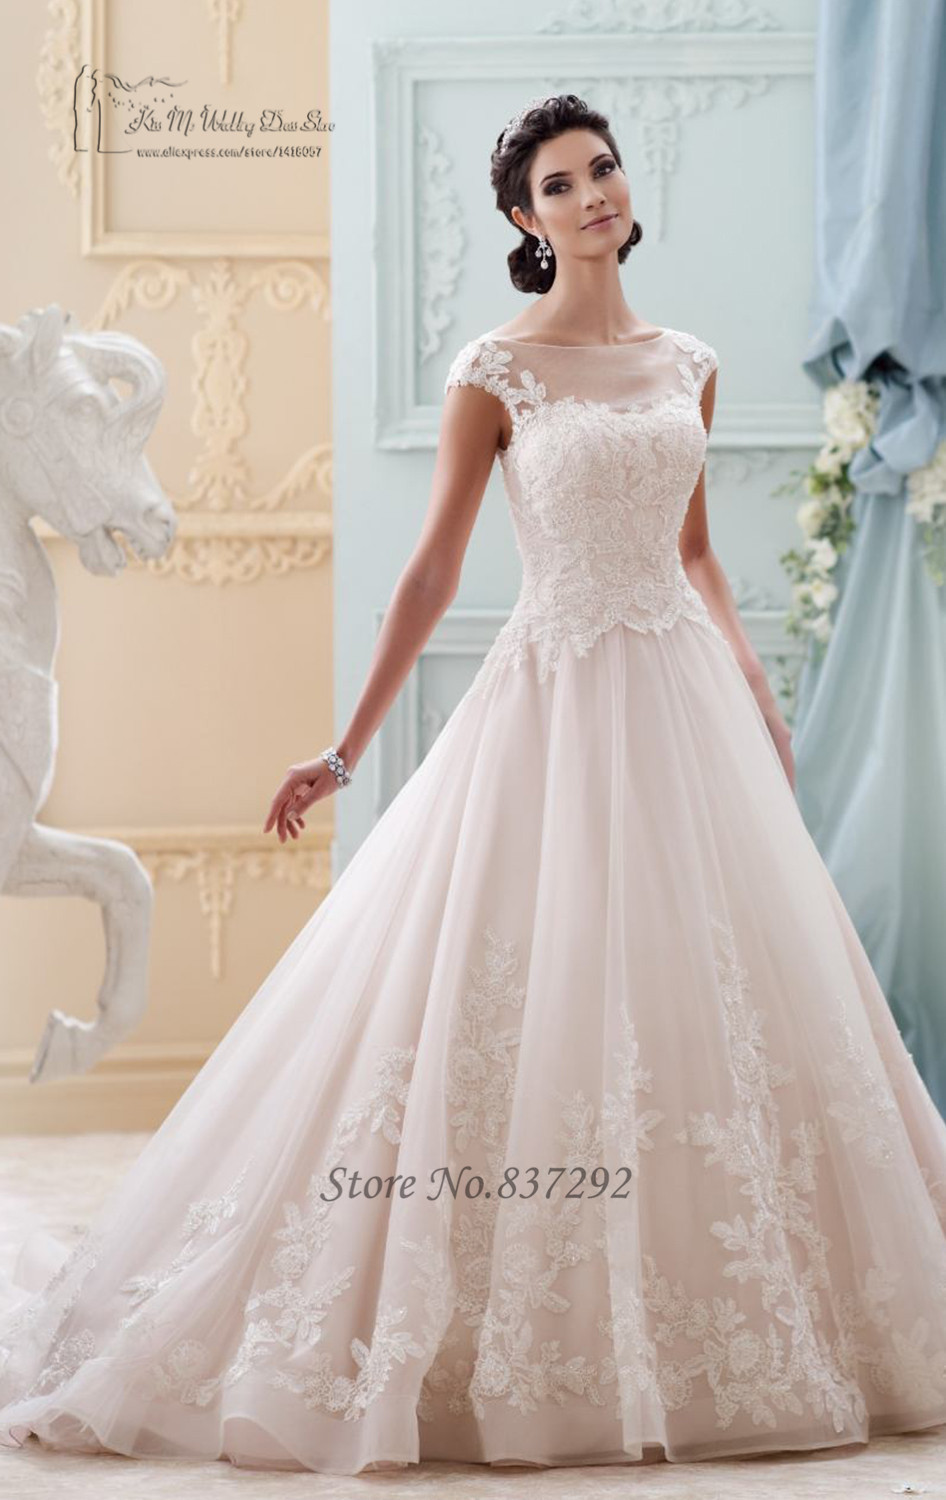 Princess Style Wedding Dress with Sleeves | Dress images